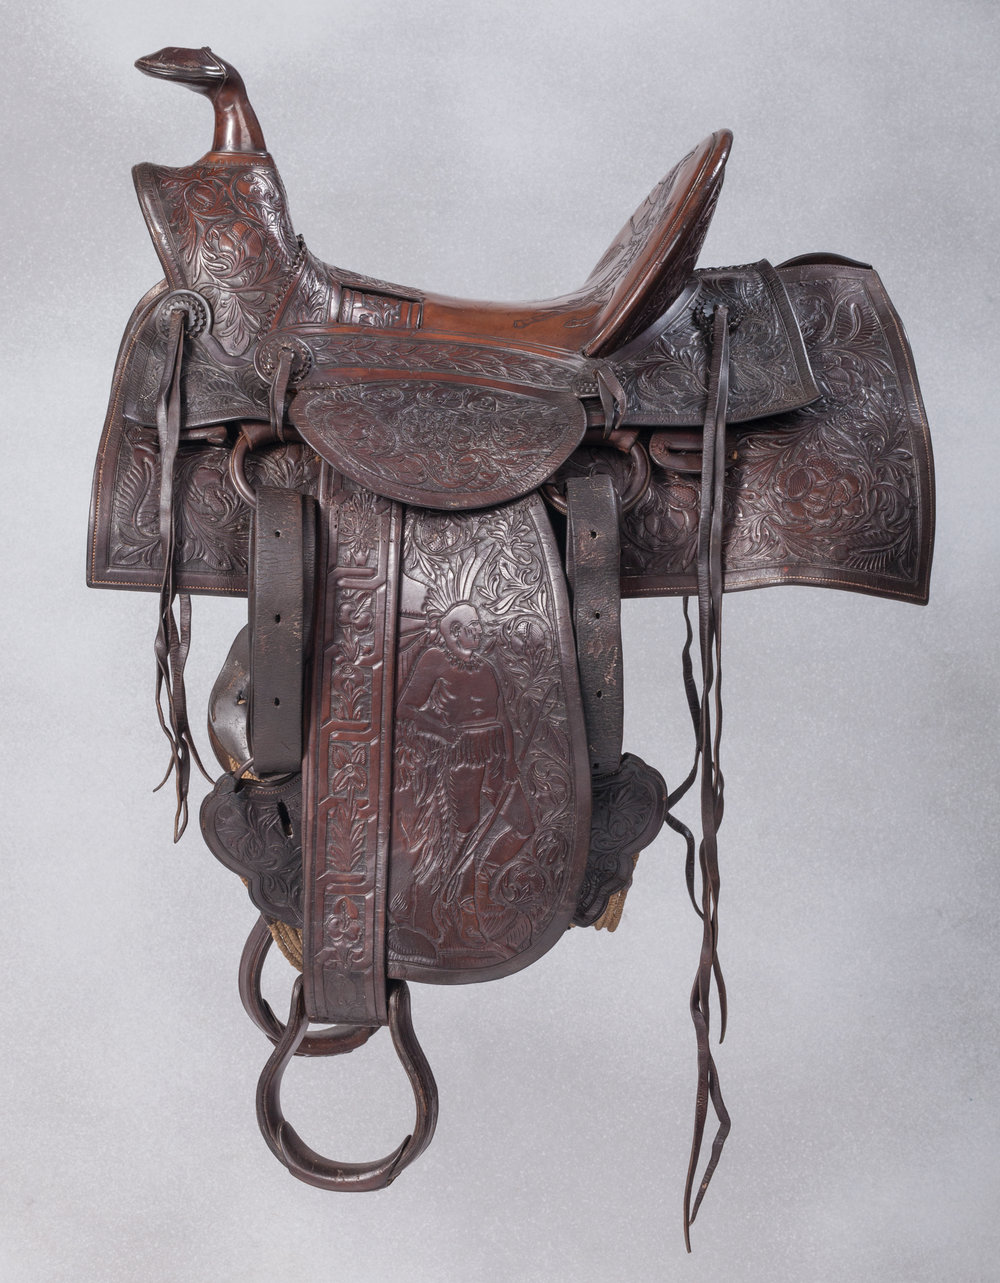 Moran Bros. Territorial Exhibition saddle